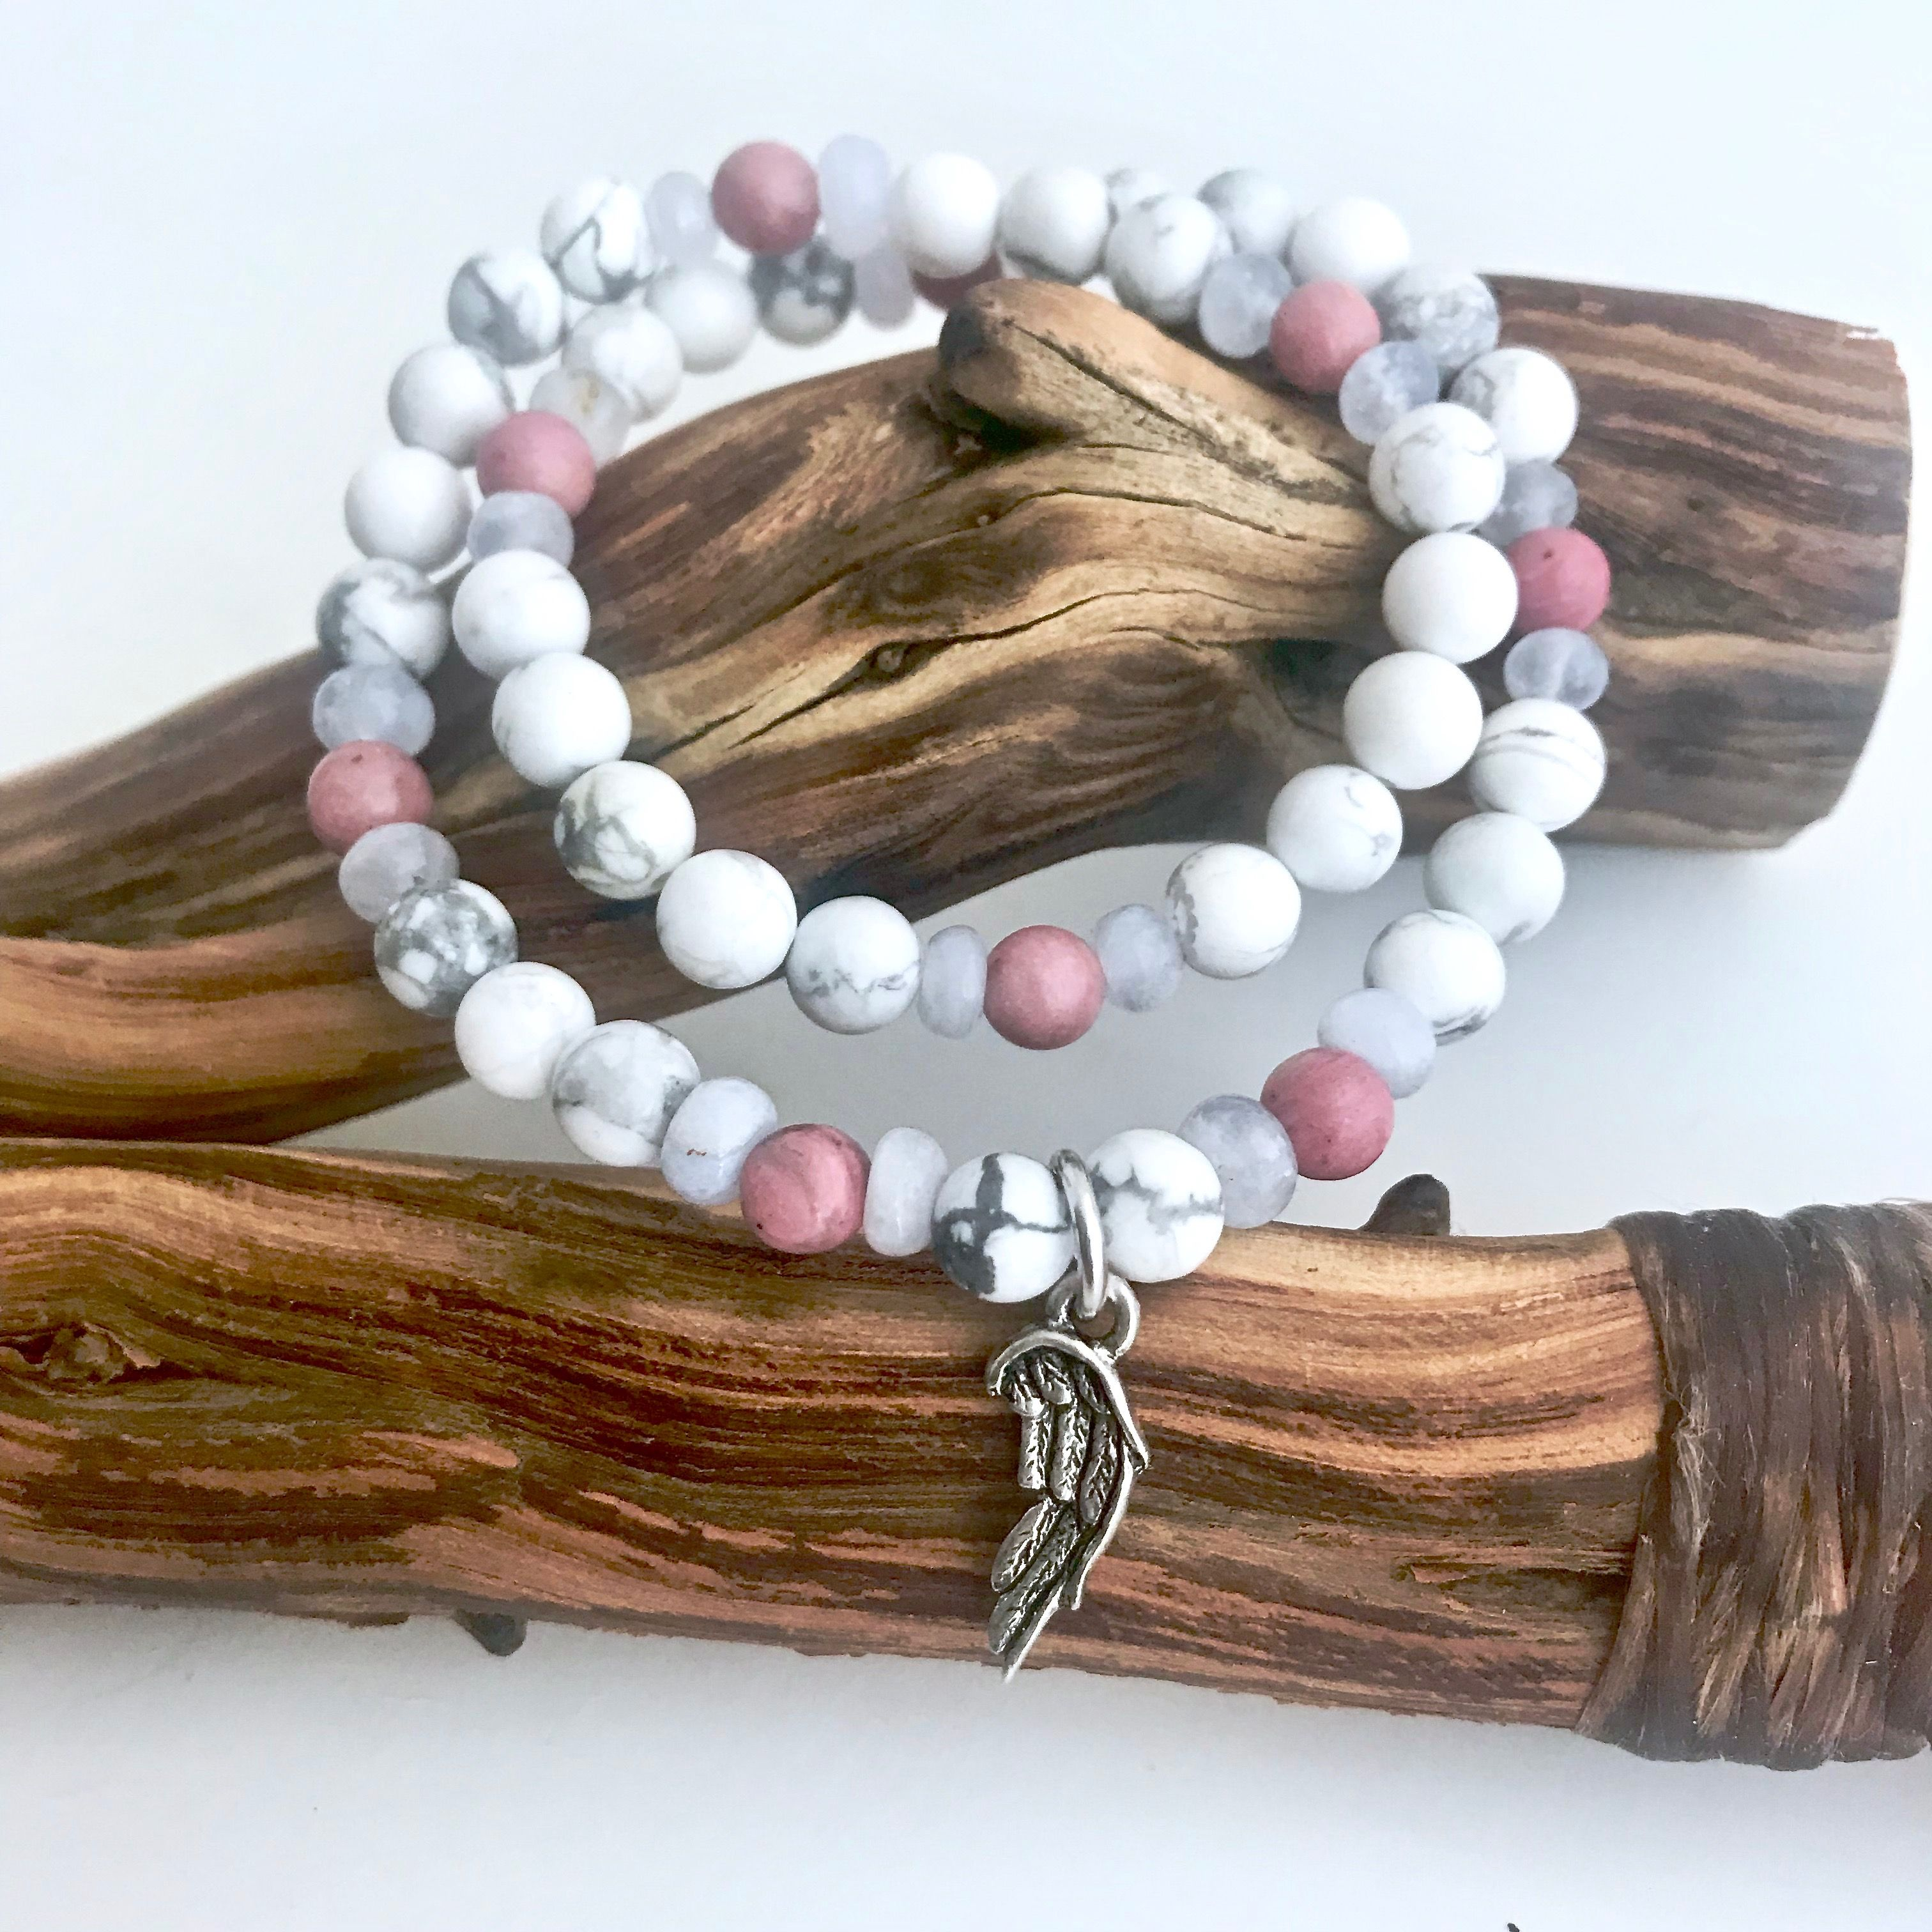 Blue Lace Agate, Rhodonite and Howlite Healing Crystal Double Wrap Bracelet with Angel Wing Handmade by Soul Sisters Designs